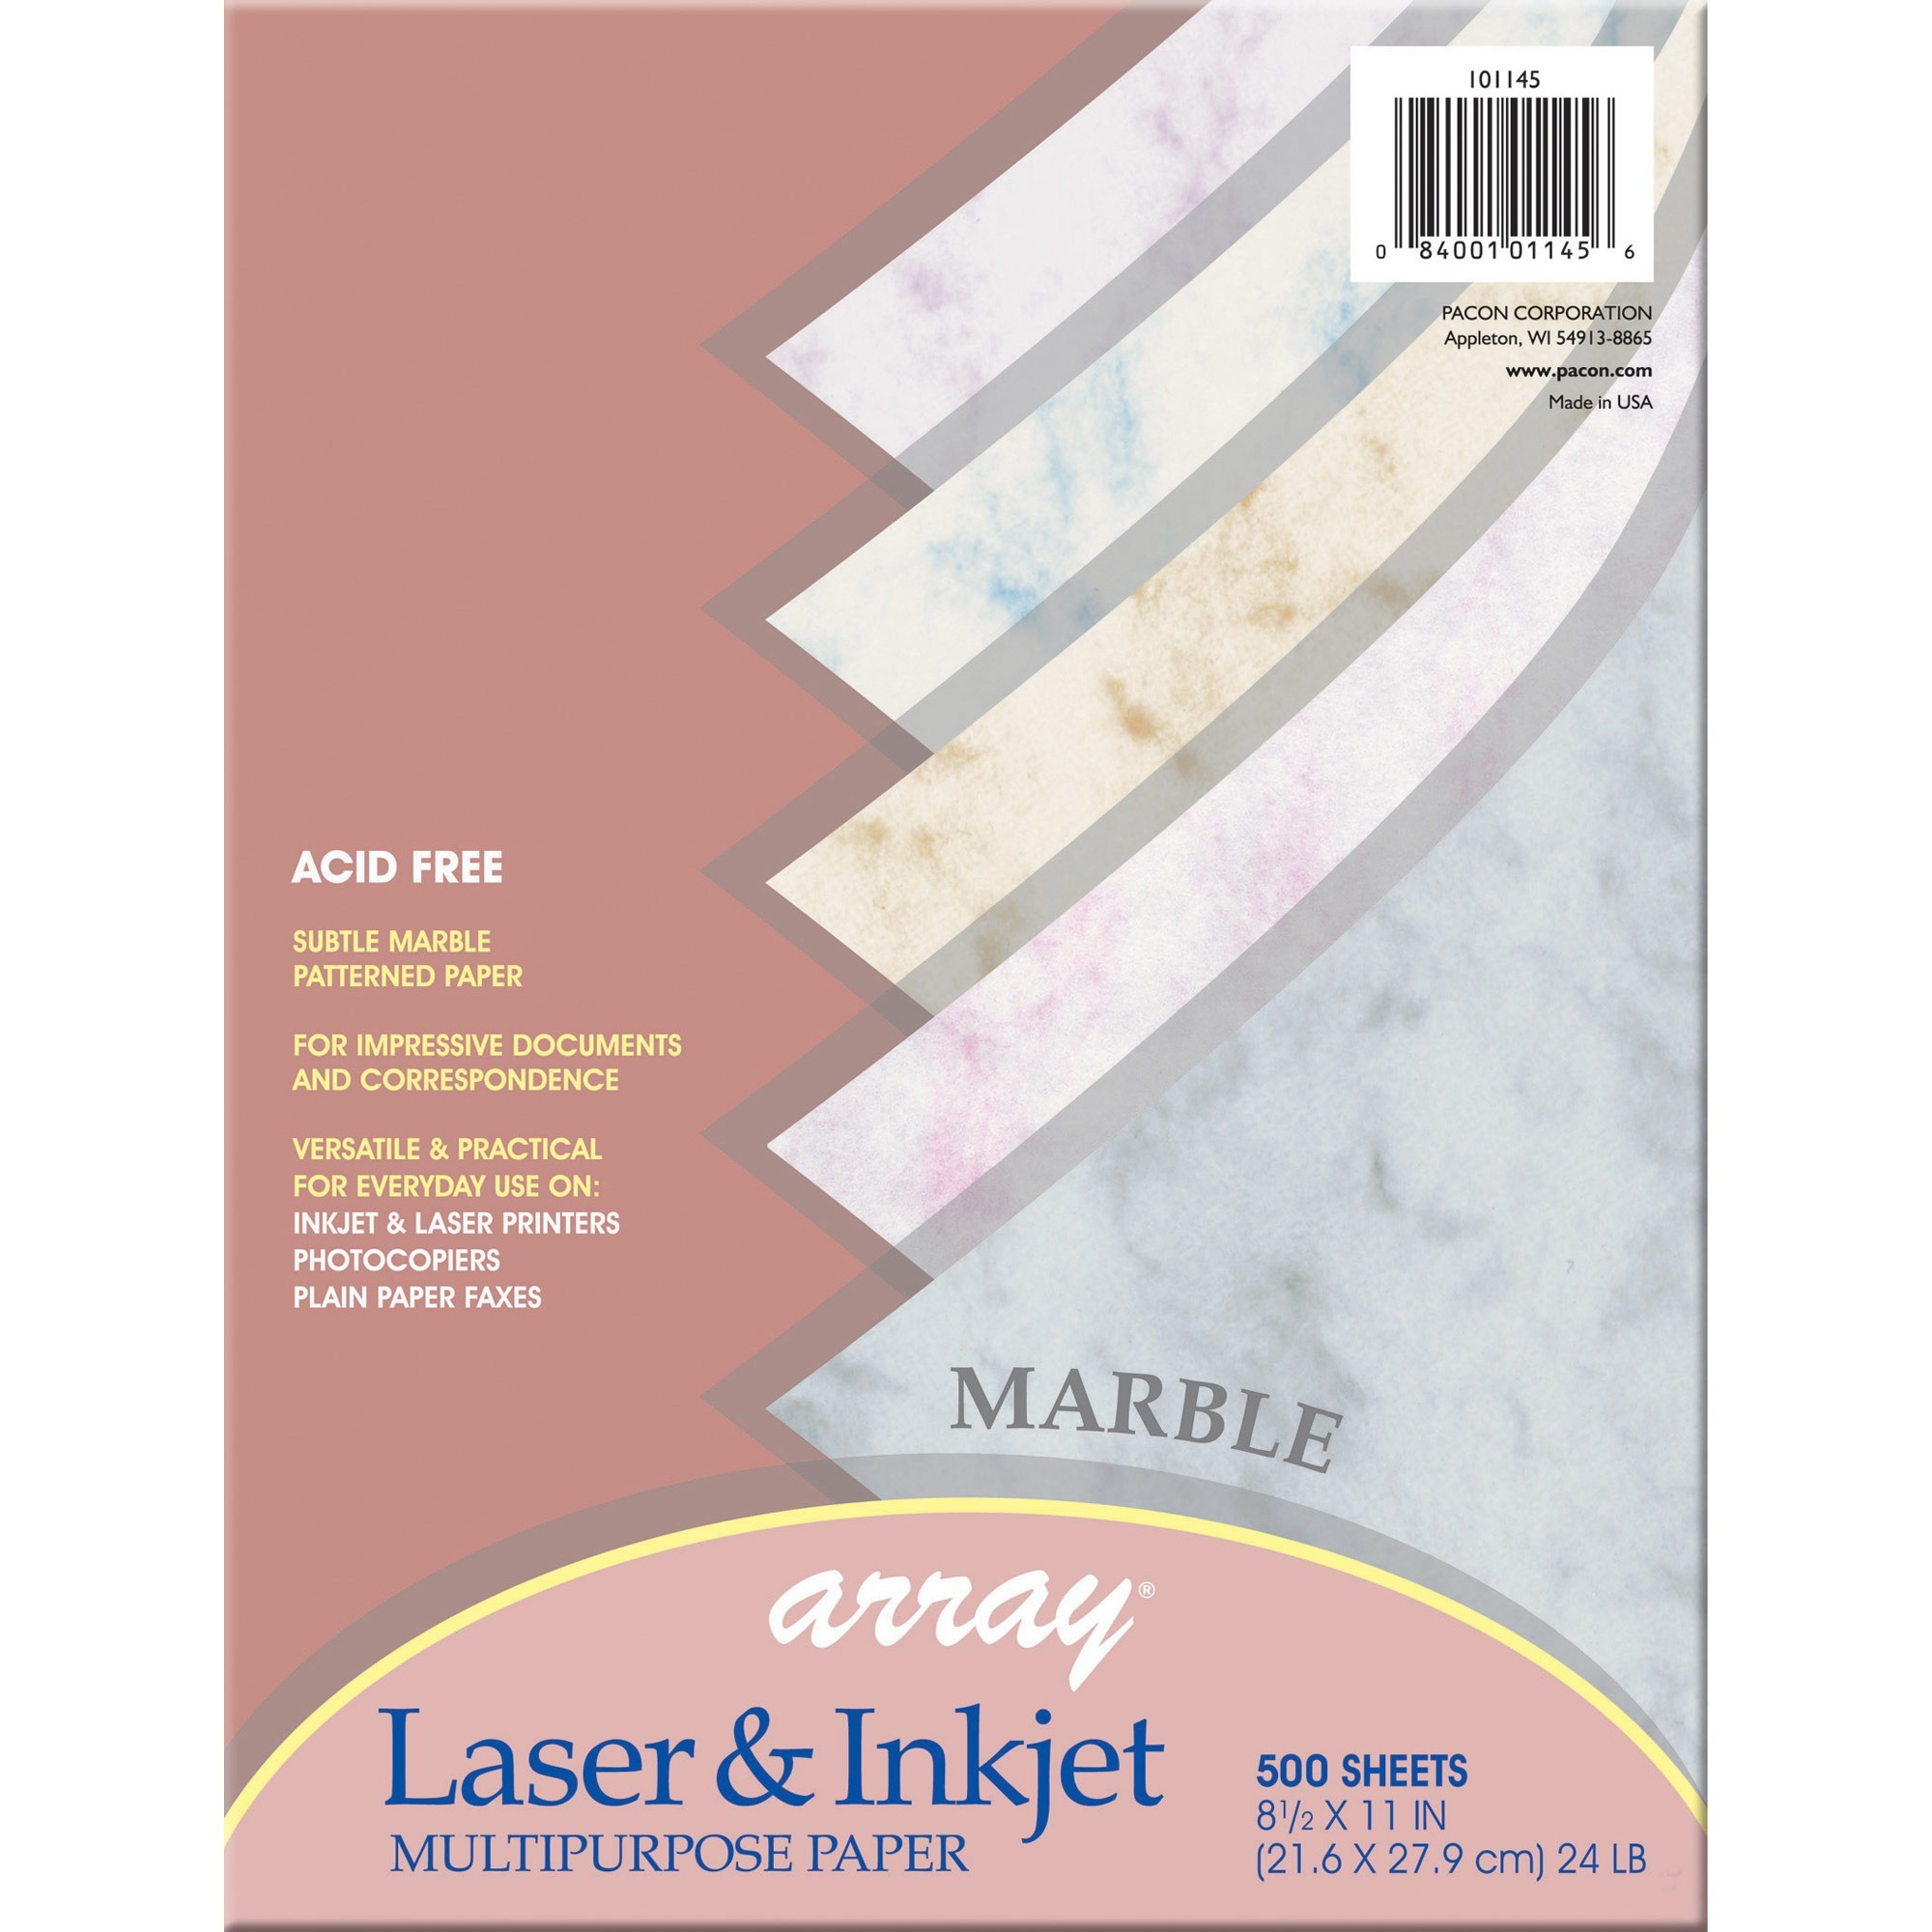 Pacon, PAC101145, Marble Bond Paper, 500 / Ream, Blue,Gray,Cherry,Tan,Lilac